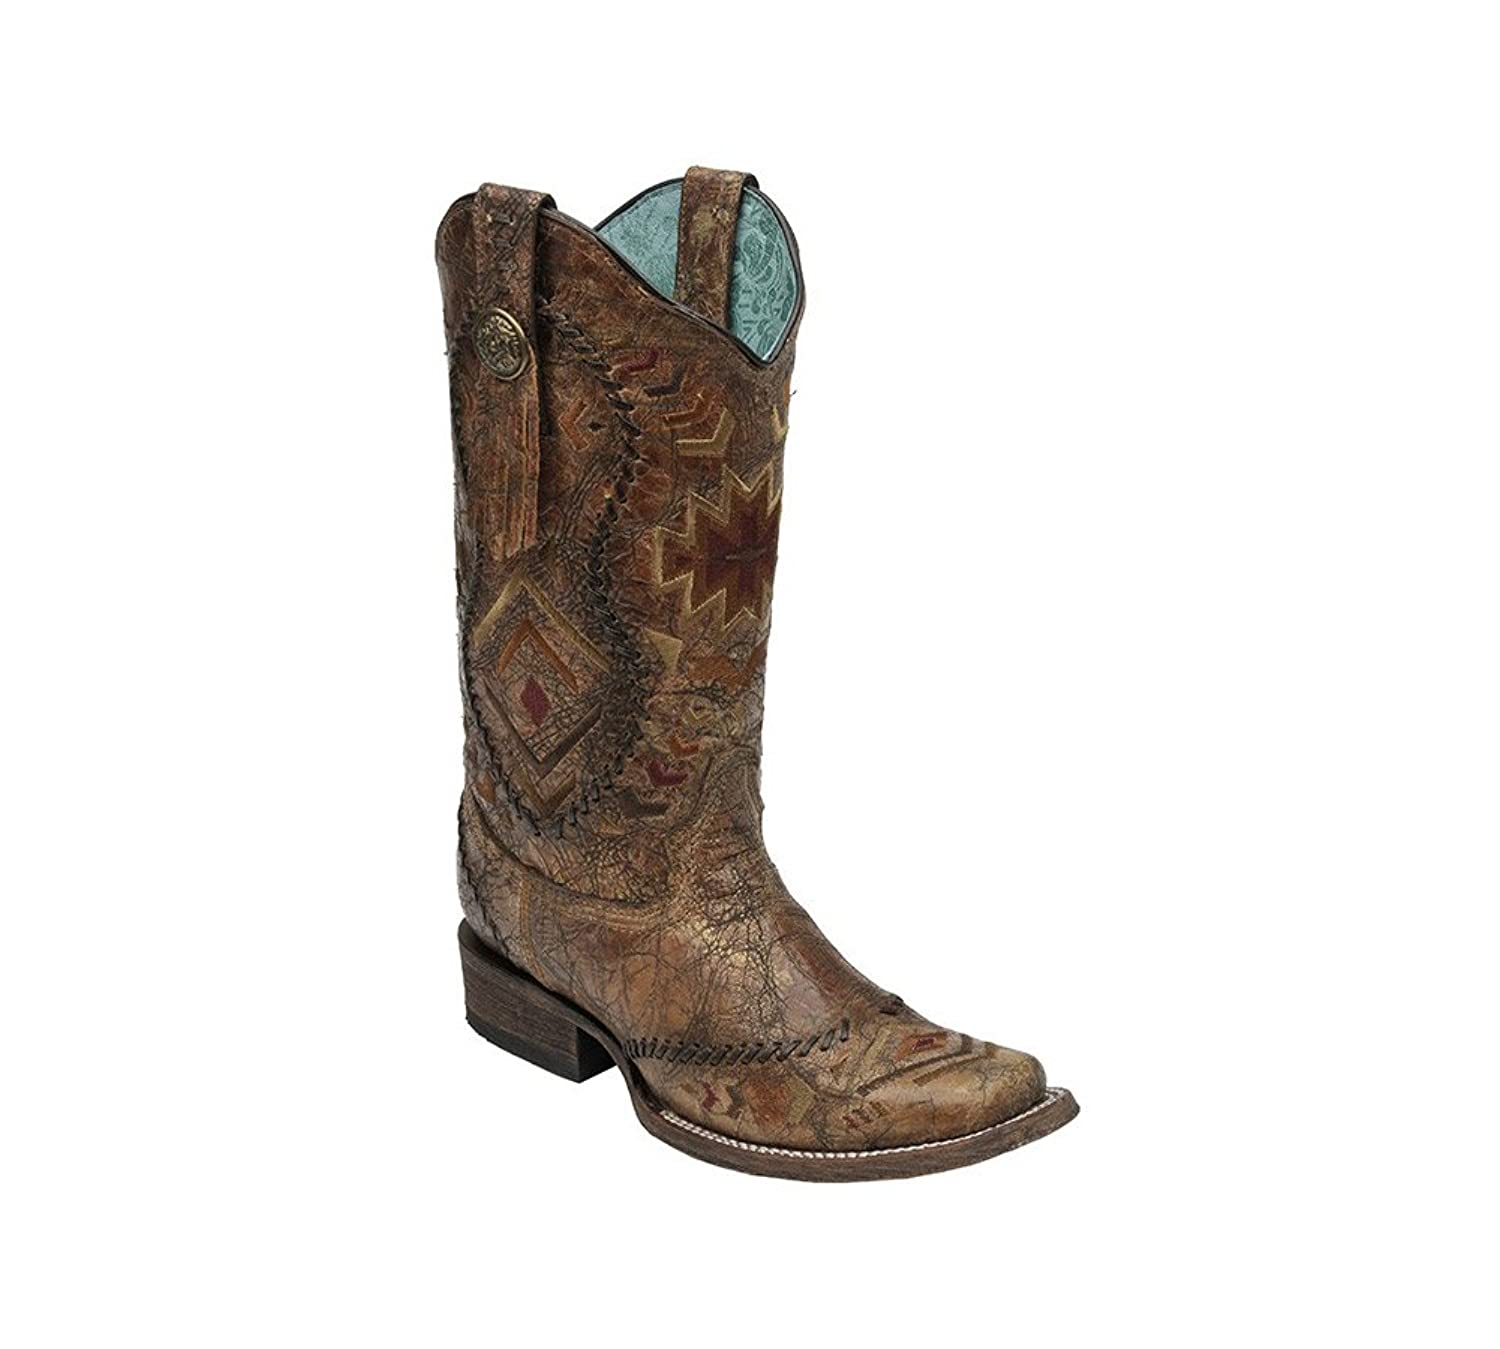 CORRAL Women's C2915 Ethnic Pattern & Whip Stitch Square Toe Western Boot